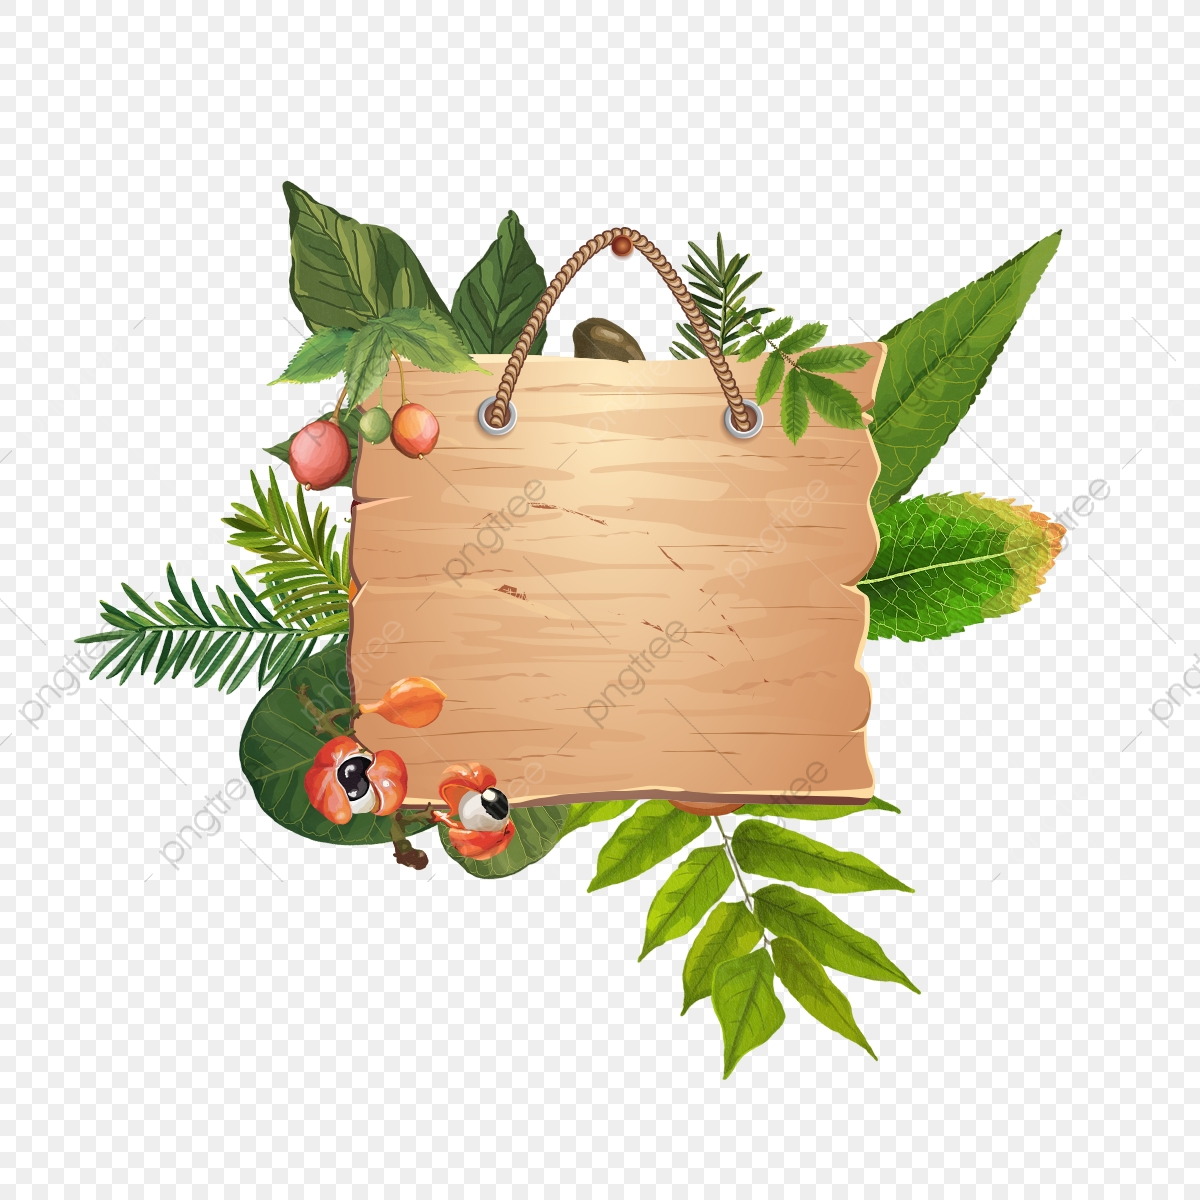 watercolor forest png vector psd and clipart with transparent background for free download pngtree https pngtree com freepng watercolor forest flowers with leaves wooden hanging 3588440 html